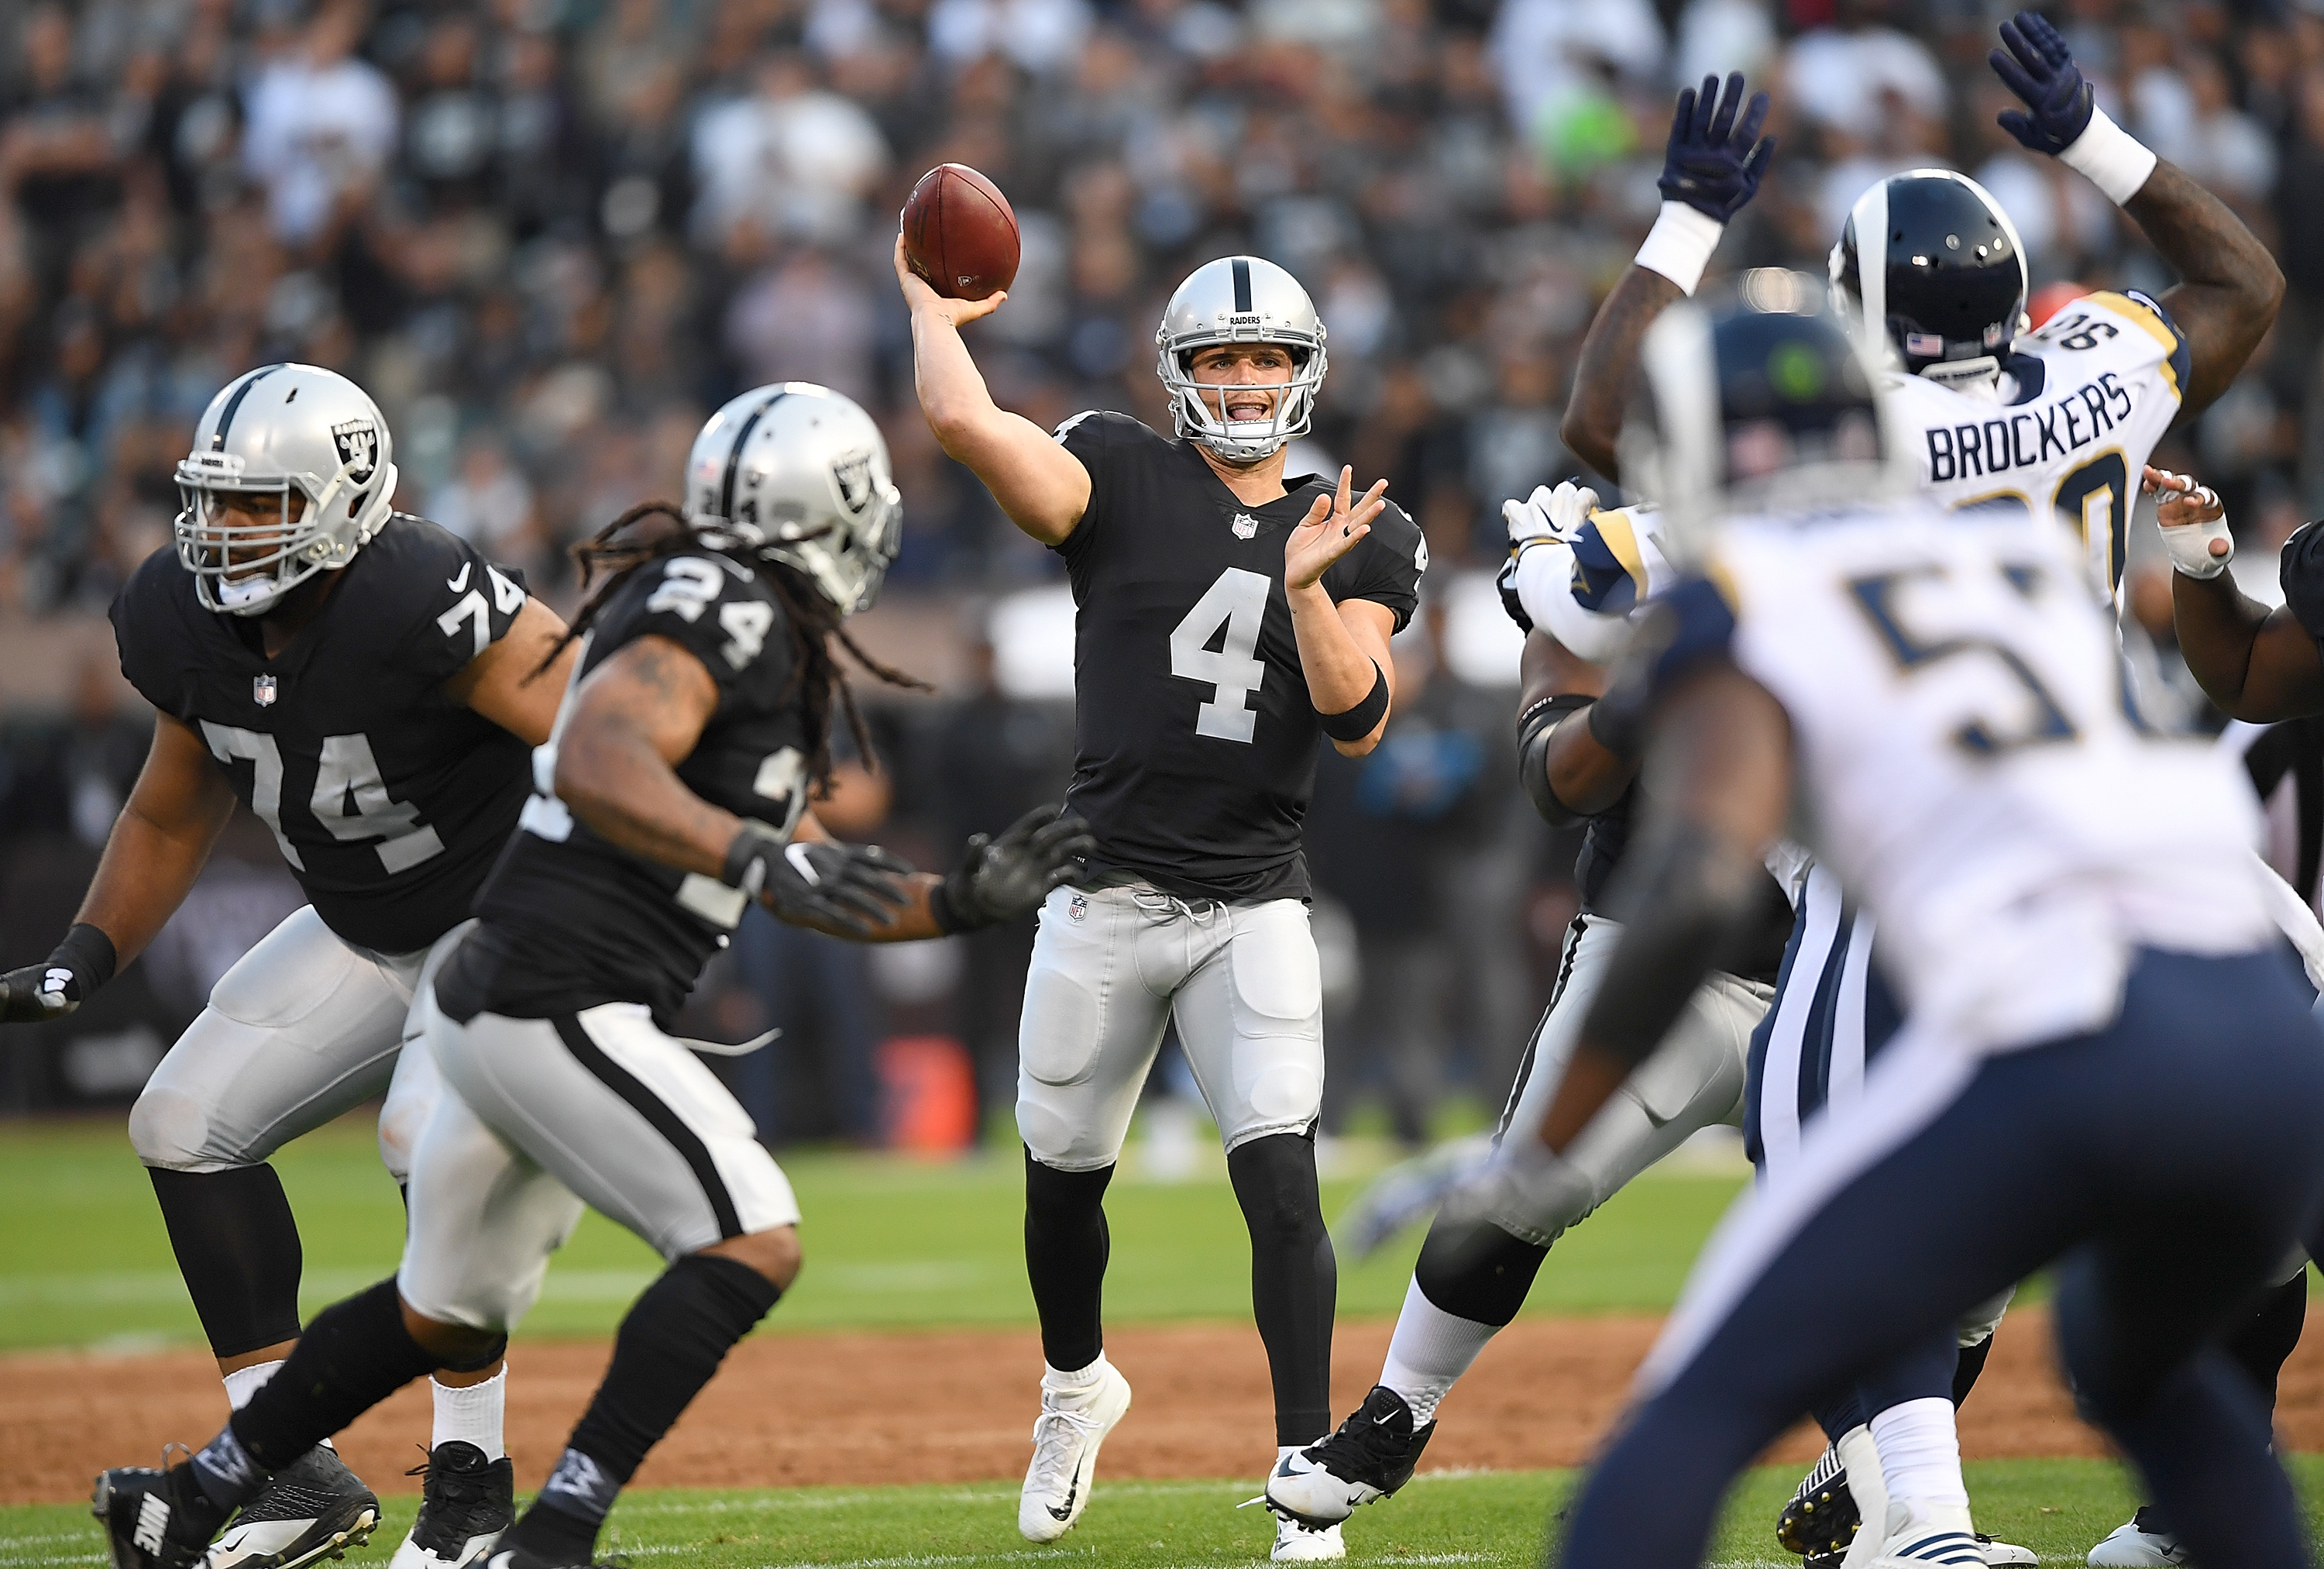 oakland raiders football The latest oakland raiders news, stats and columns from the san francisco chronicle.